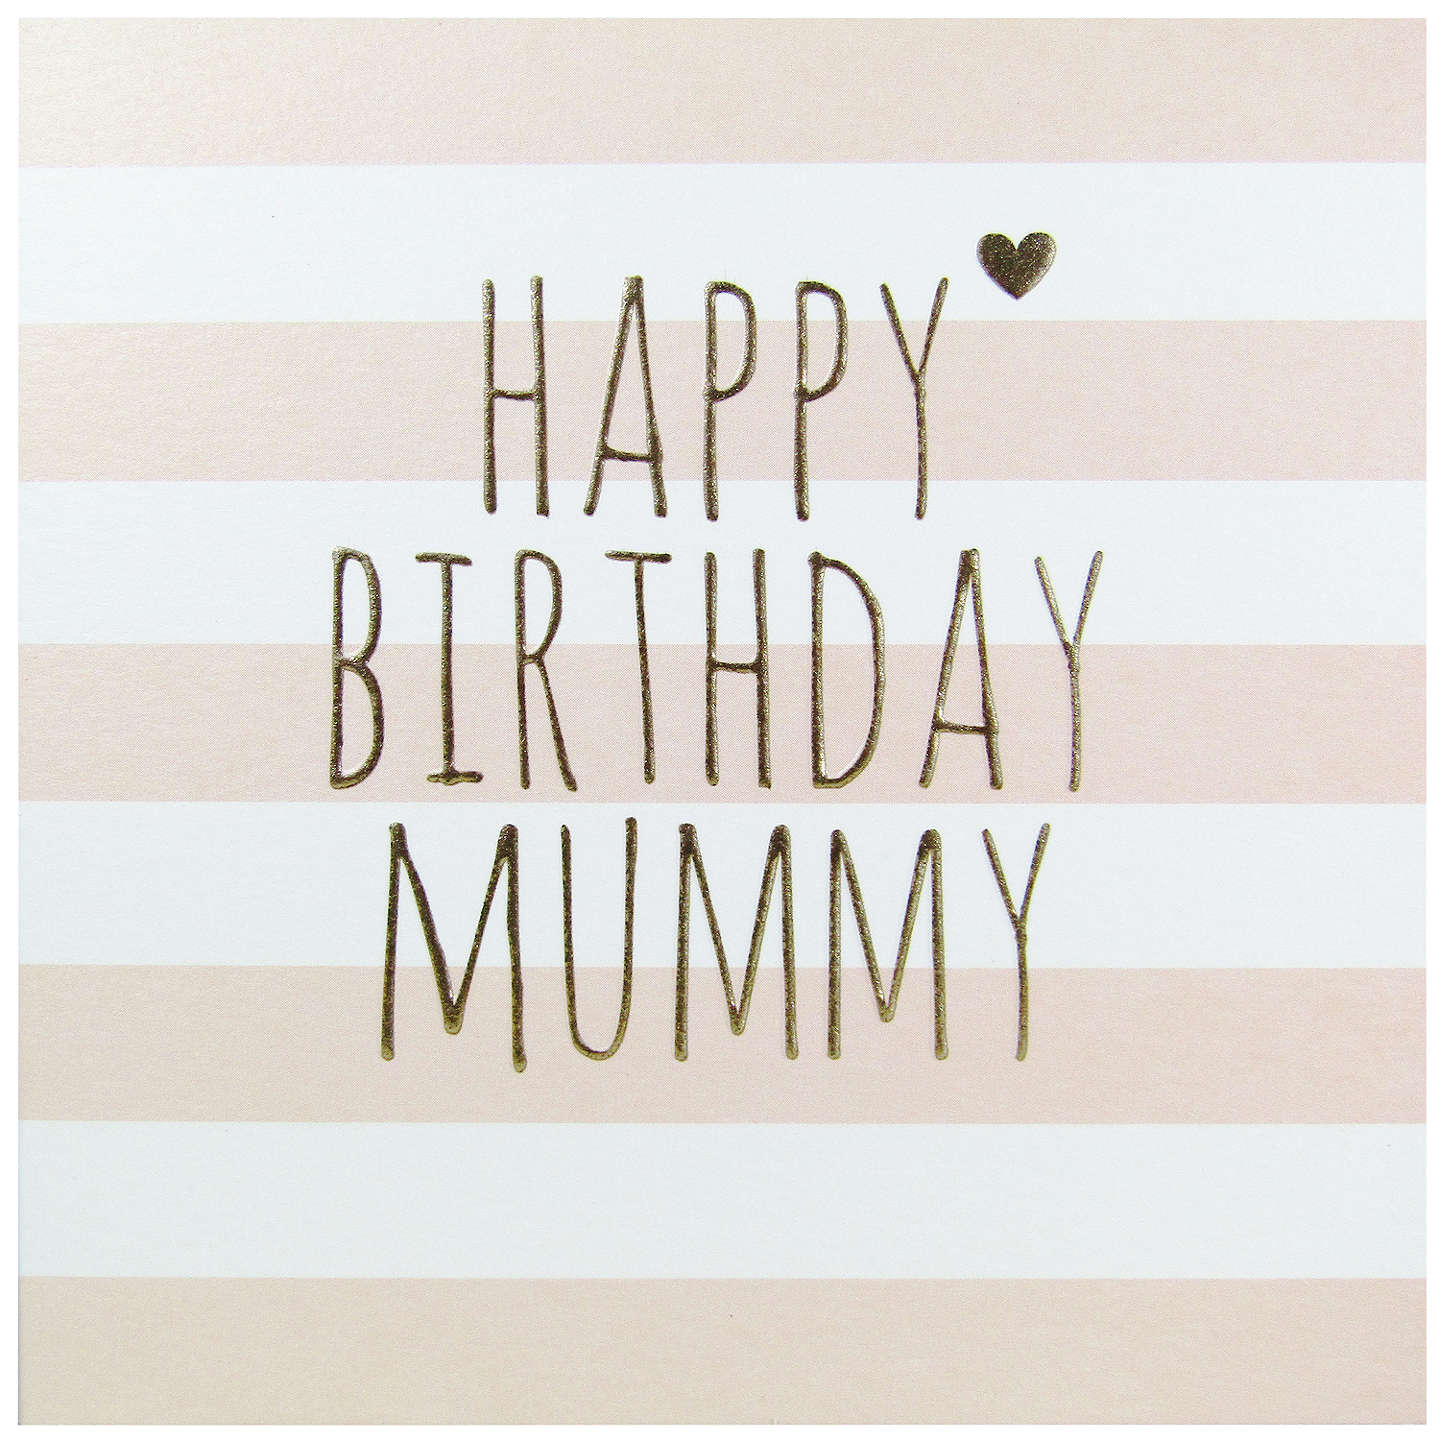 Bellybutton Bubble Happy Birthday Mummy Greeting Card At John Lewis